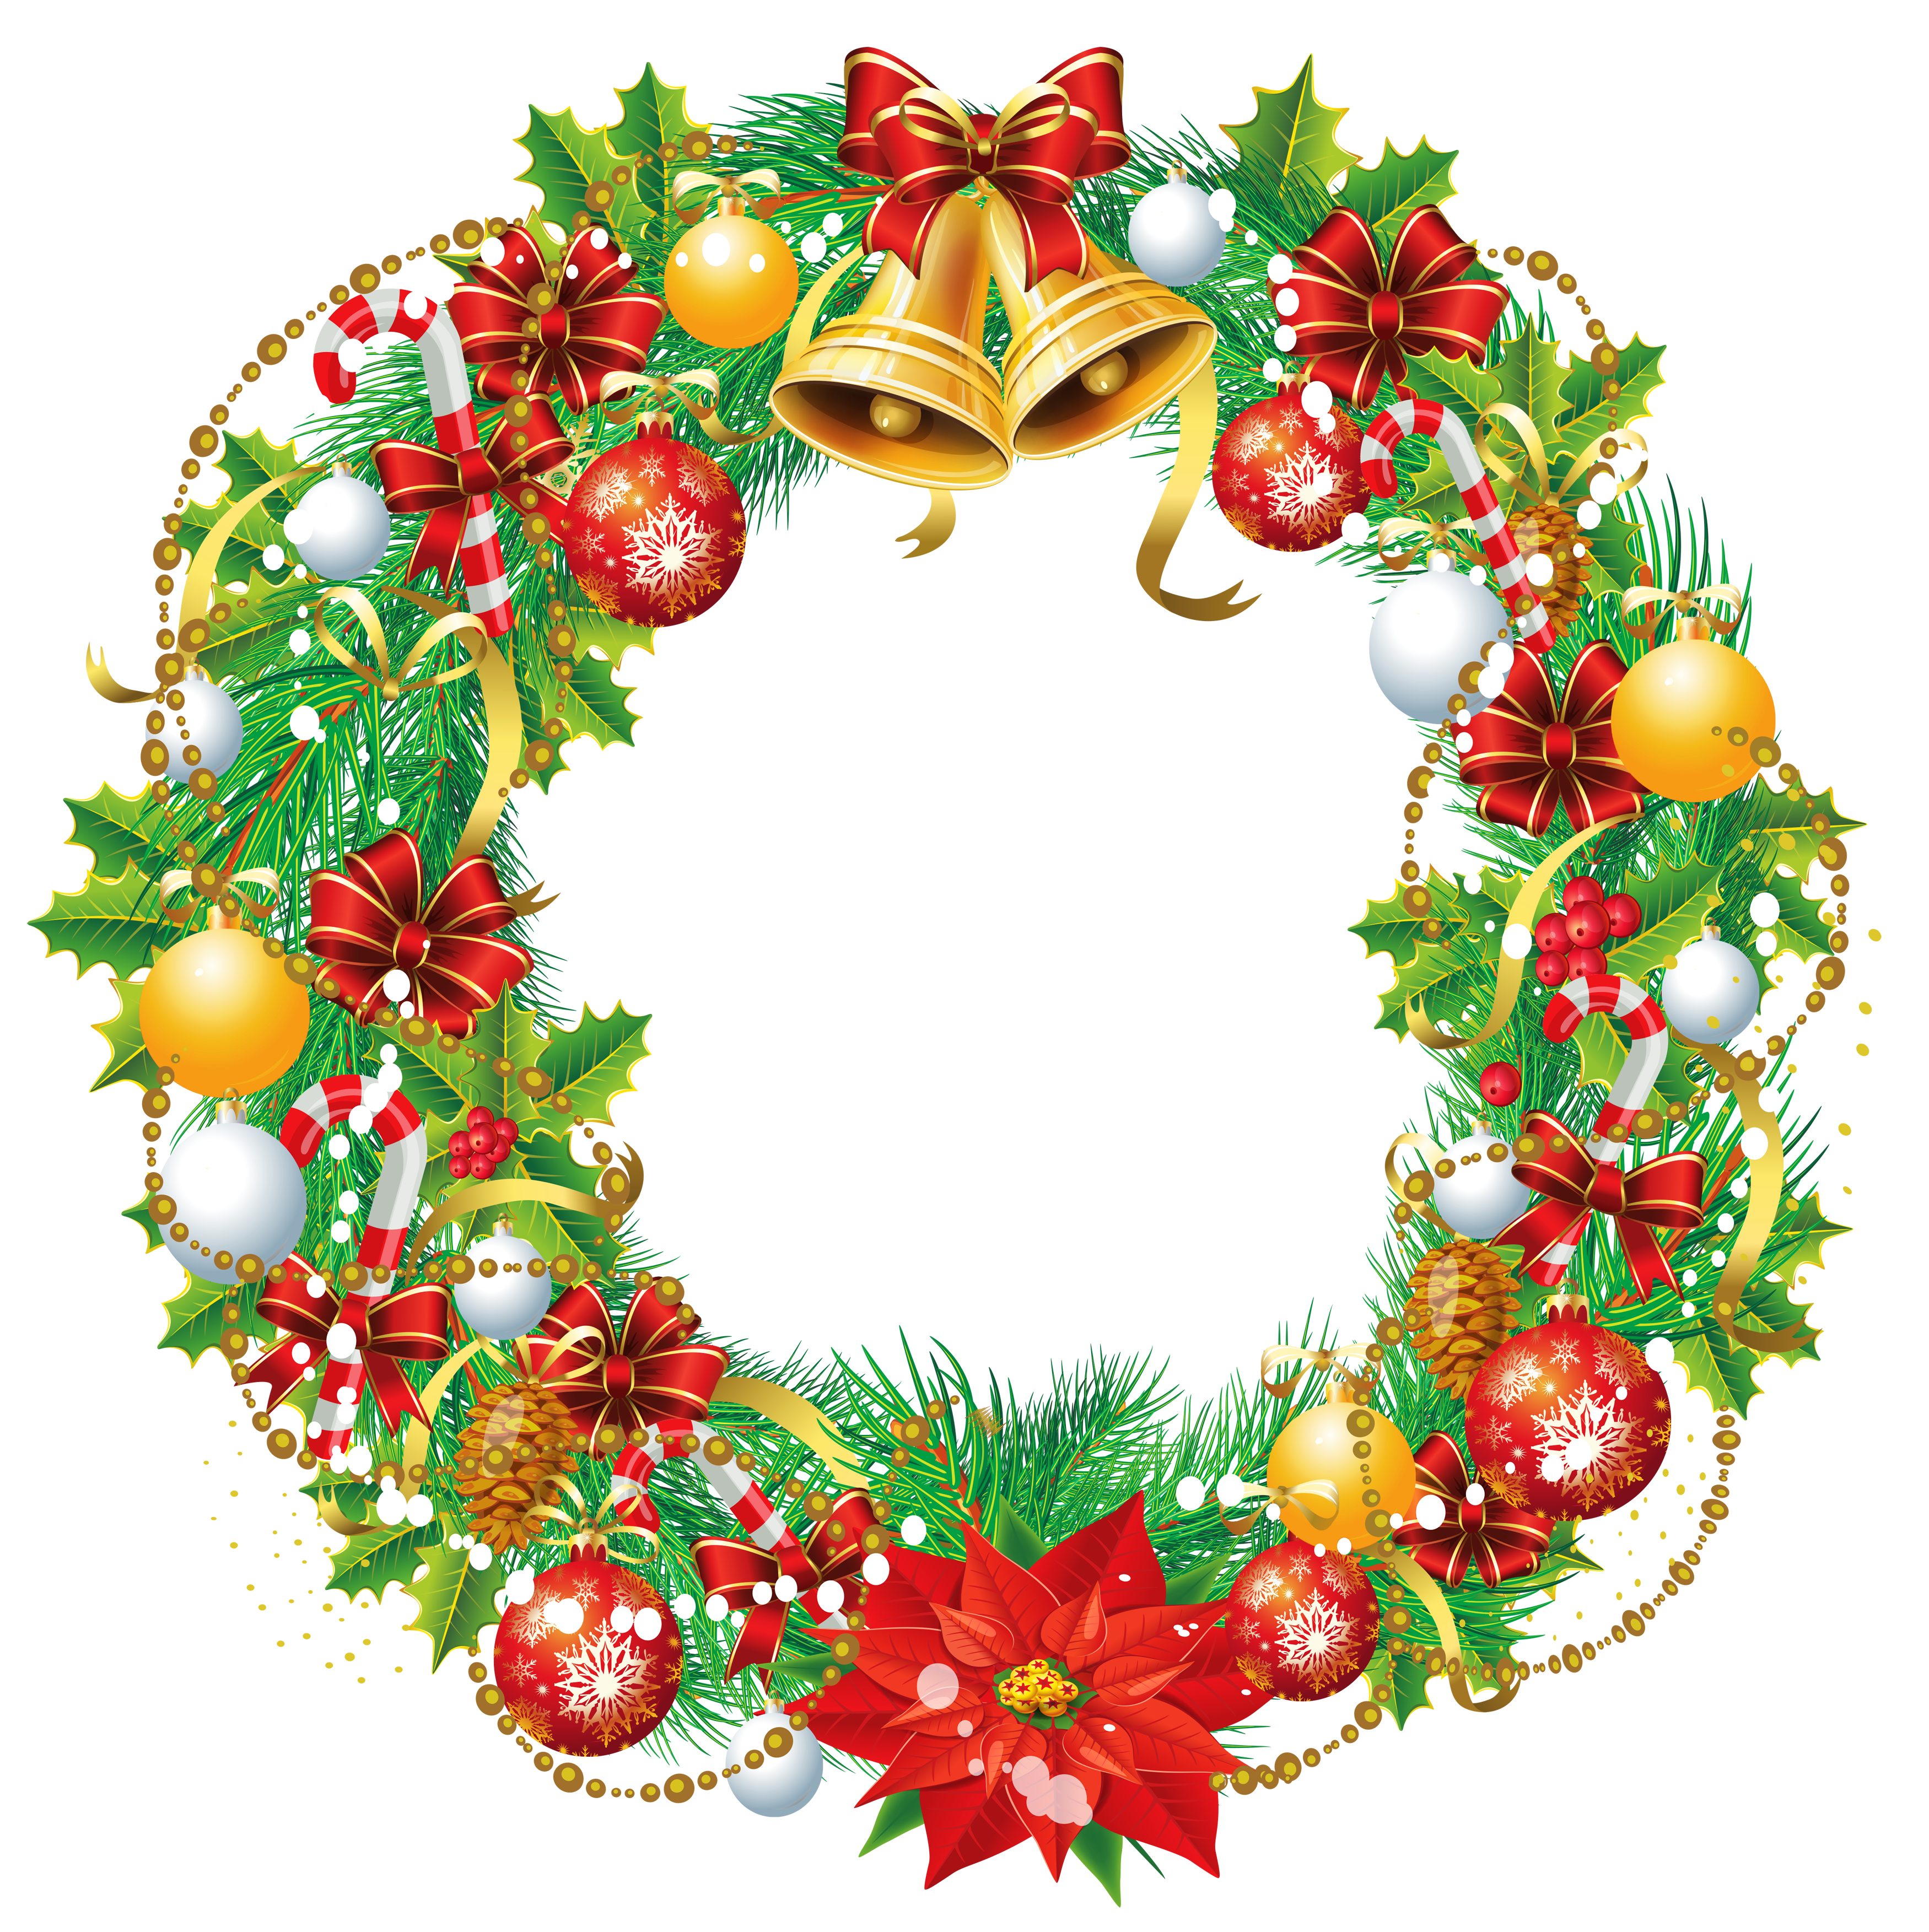 Christmas wreath vector png. Transparent clipart picture gallery